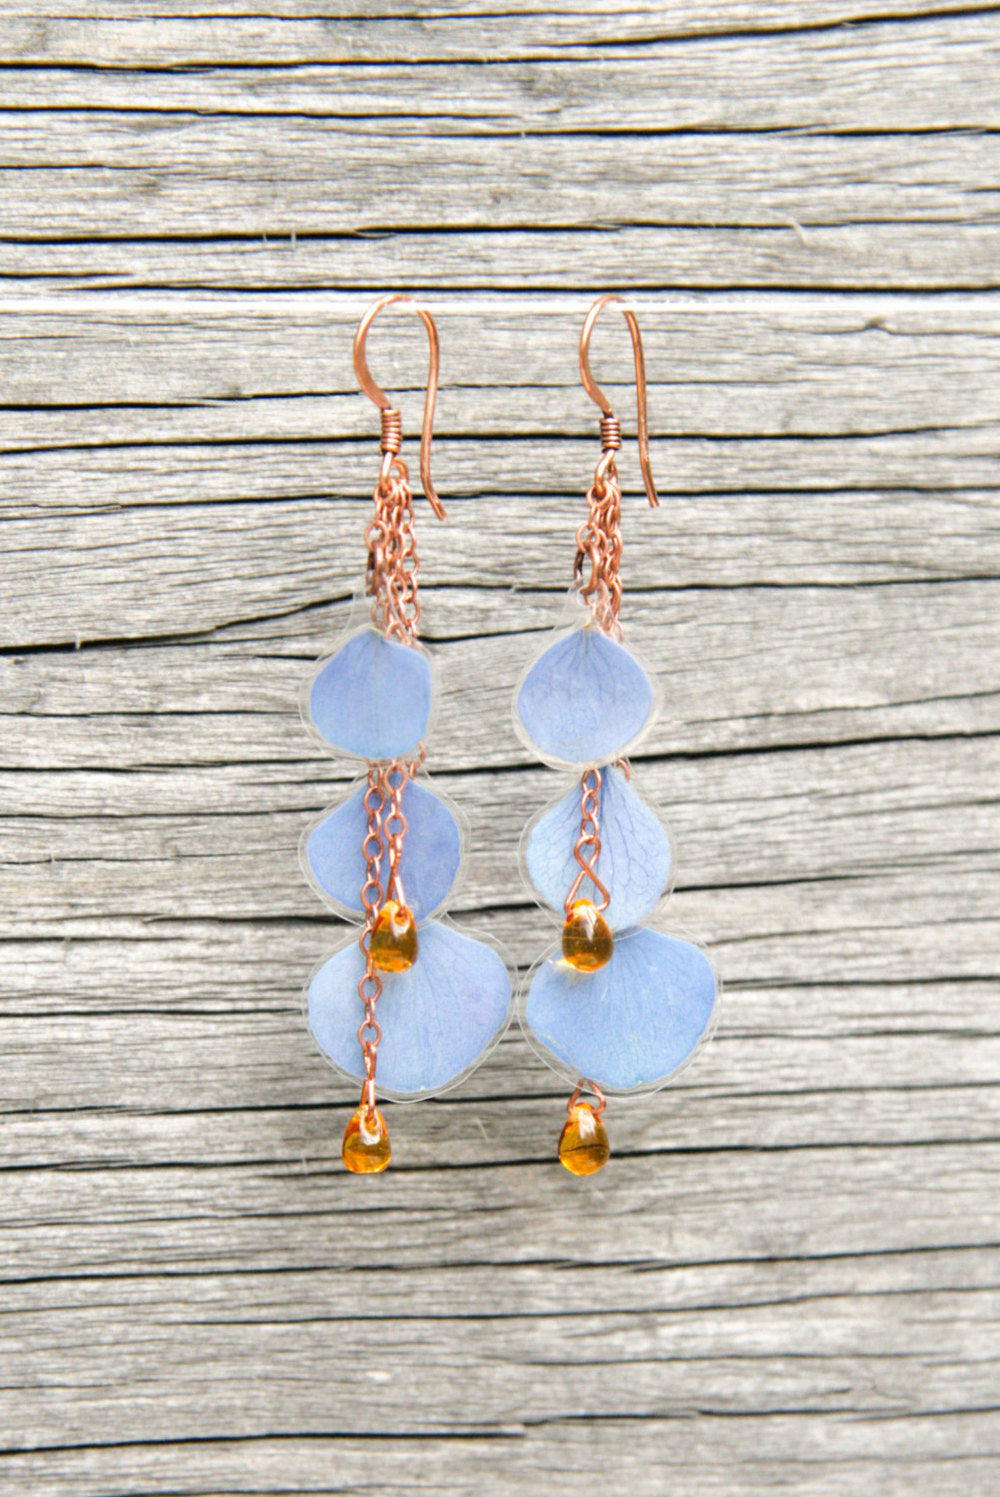 Blue Hydrangea Pressed Flower Earrings with Amber Czech Glass Beads